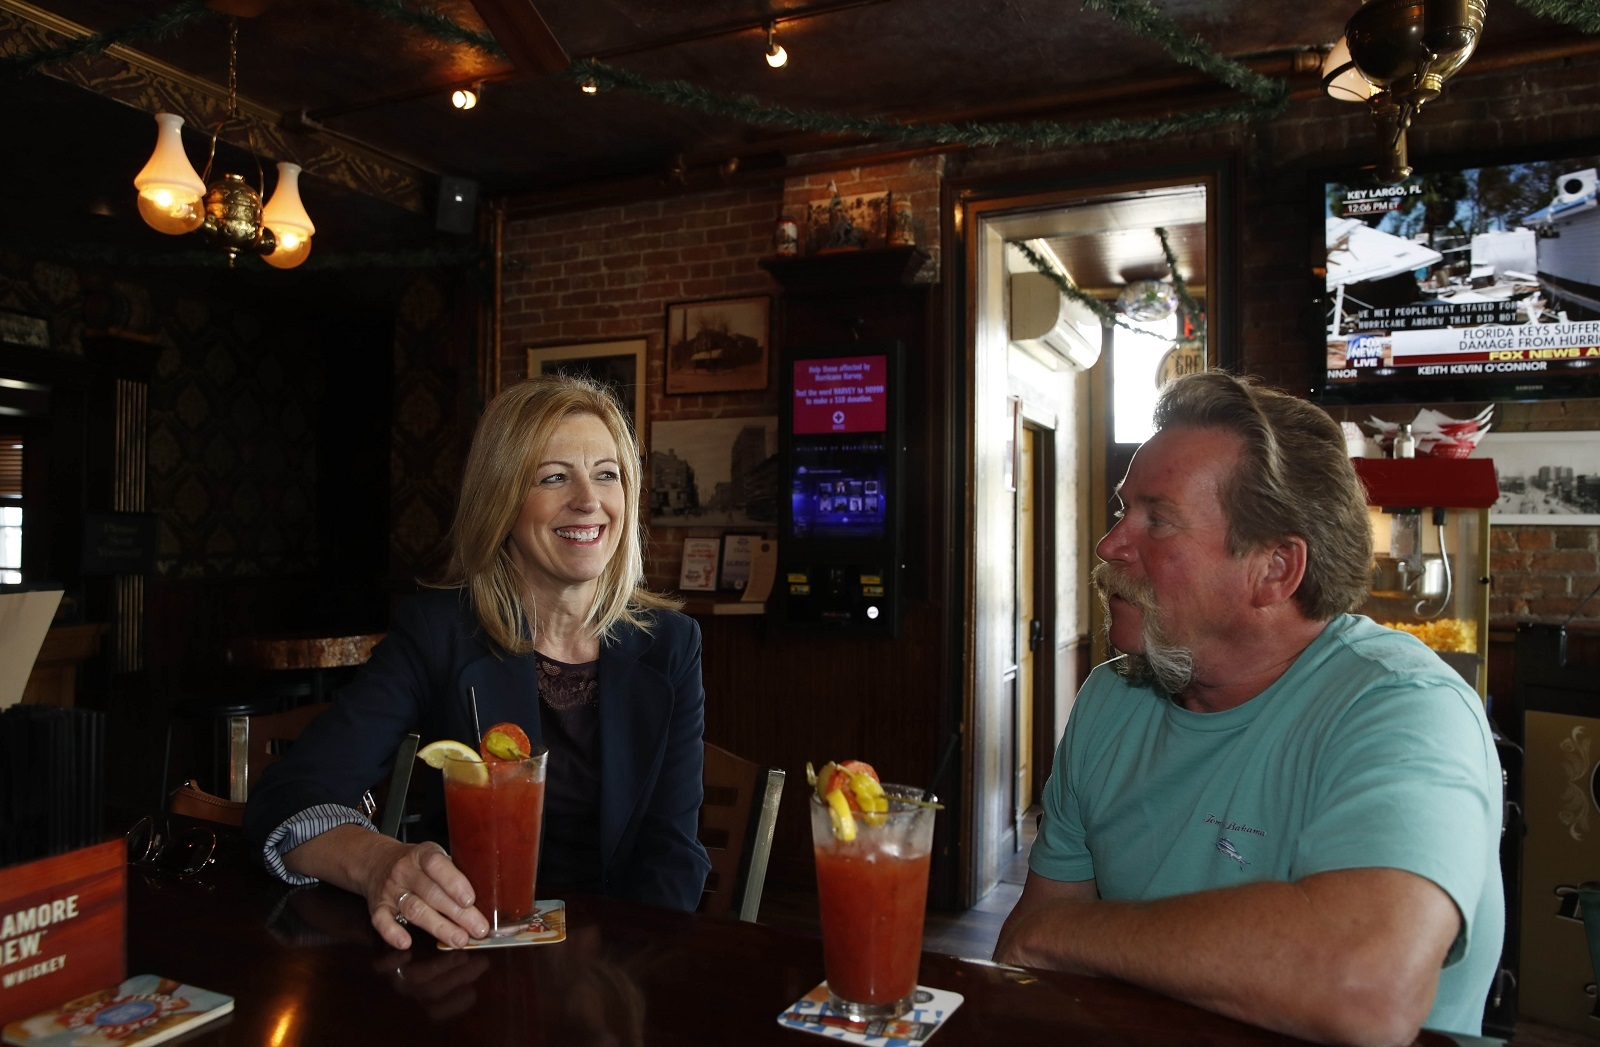 Debbie and Steve Cudzilo, of North Tonawanda, stop at Ulrich's 1868 Tavern for  Bloody Marys because they are made with housemade tomato juice.